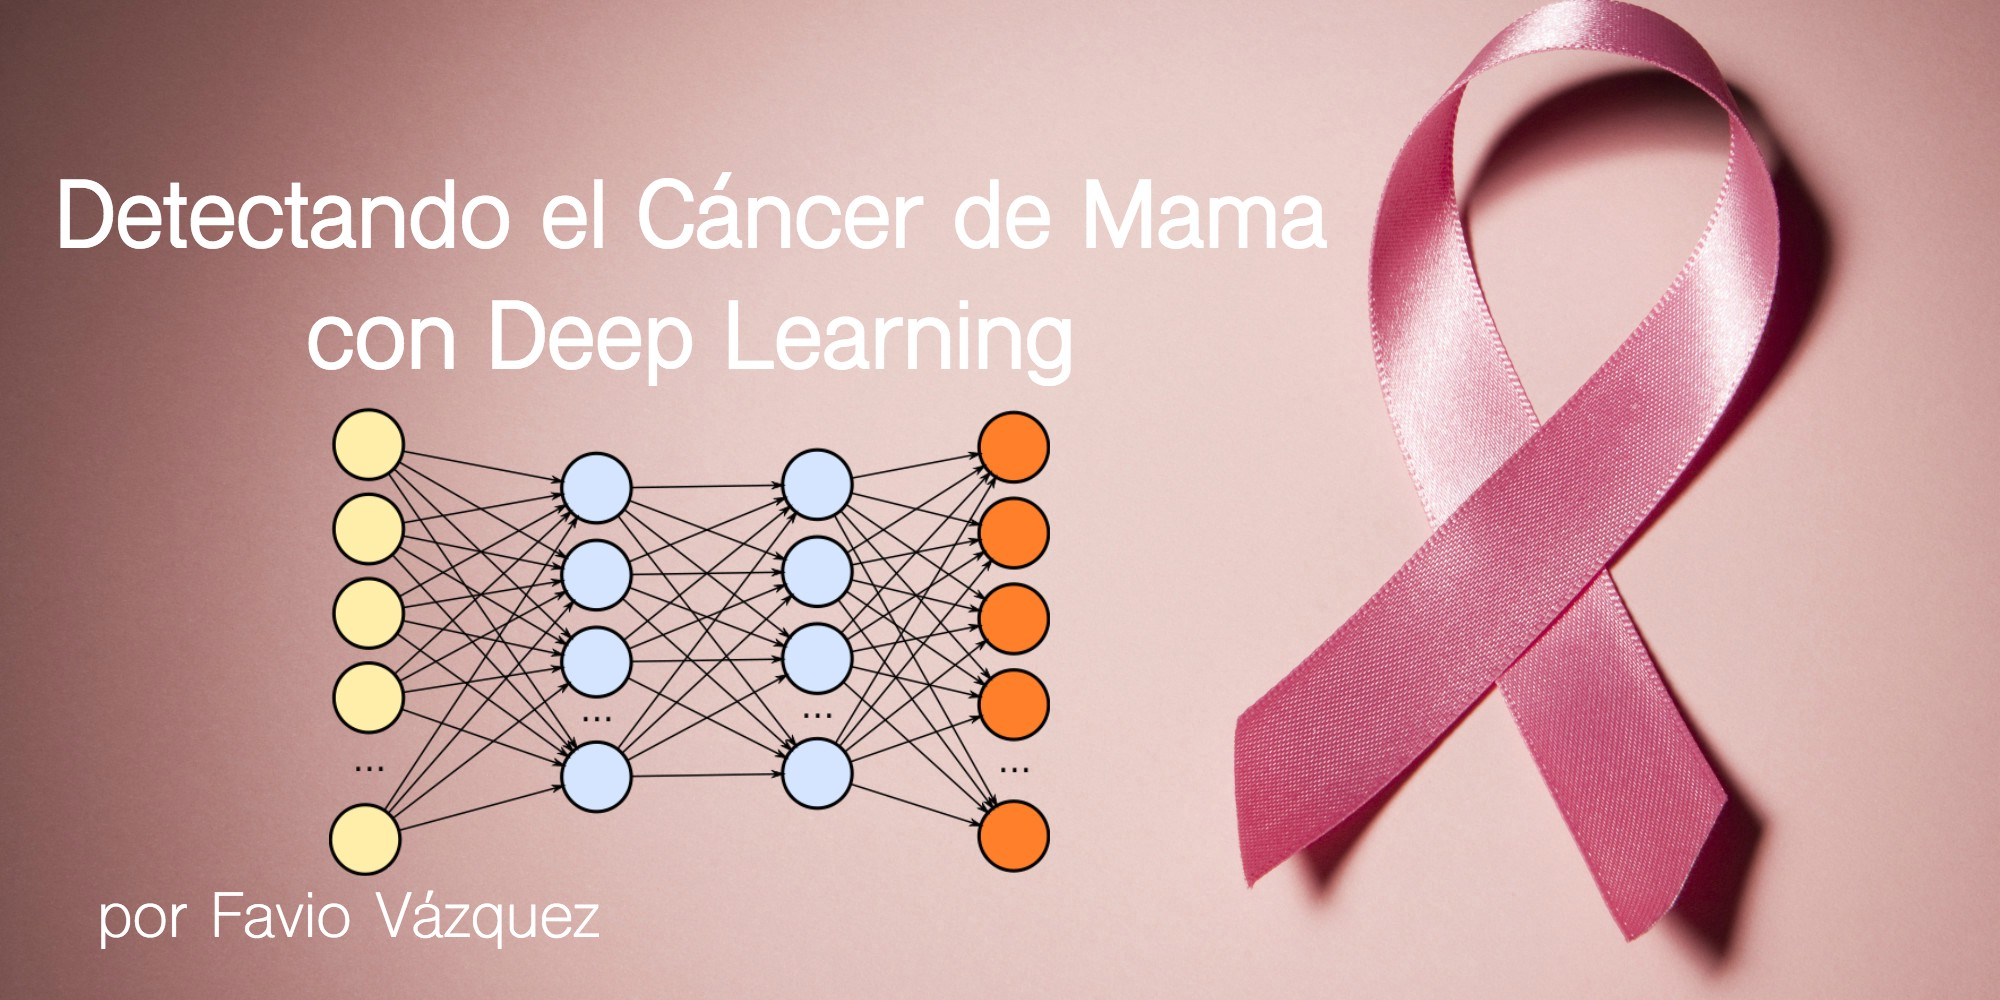 que es cancer invasivo de mama